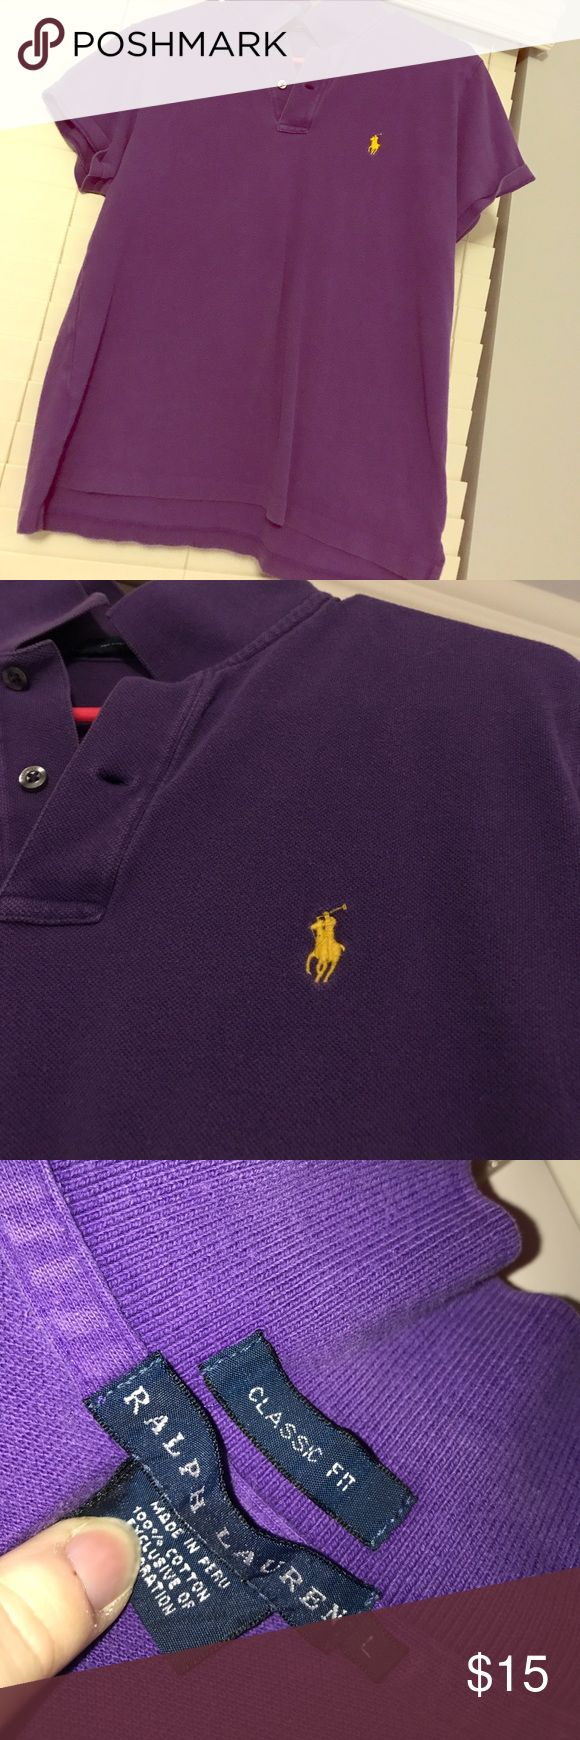 Polo Classic, rich purple color. L Size L. Classic fit. Polo by Ralph Lauren. Purple, grape color. Does show signs of wash/wear, but no rips, stains. Smoke free home. Great shirt! Polo by Ralph Lauren Tops